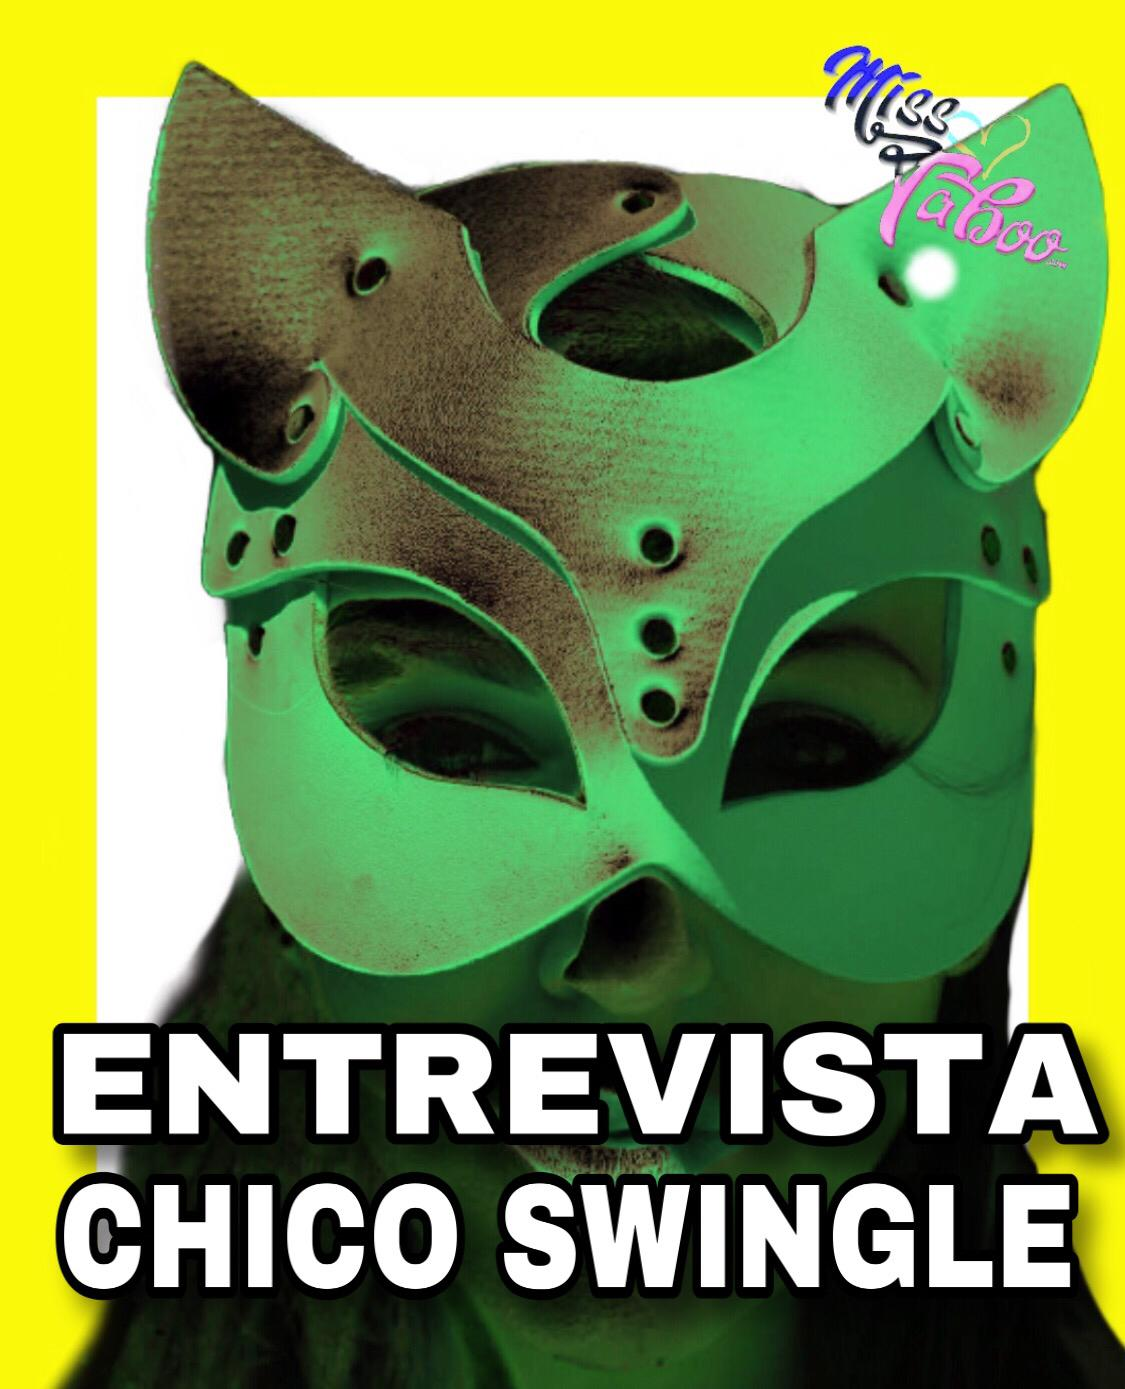 Entrevista Chico Swingle